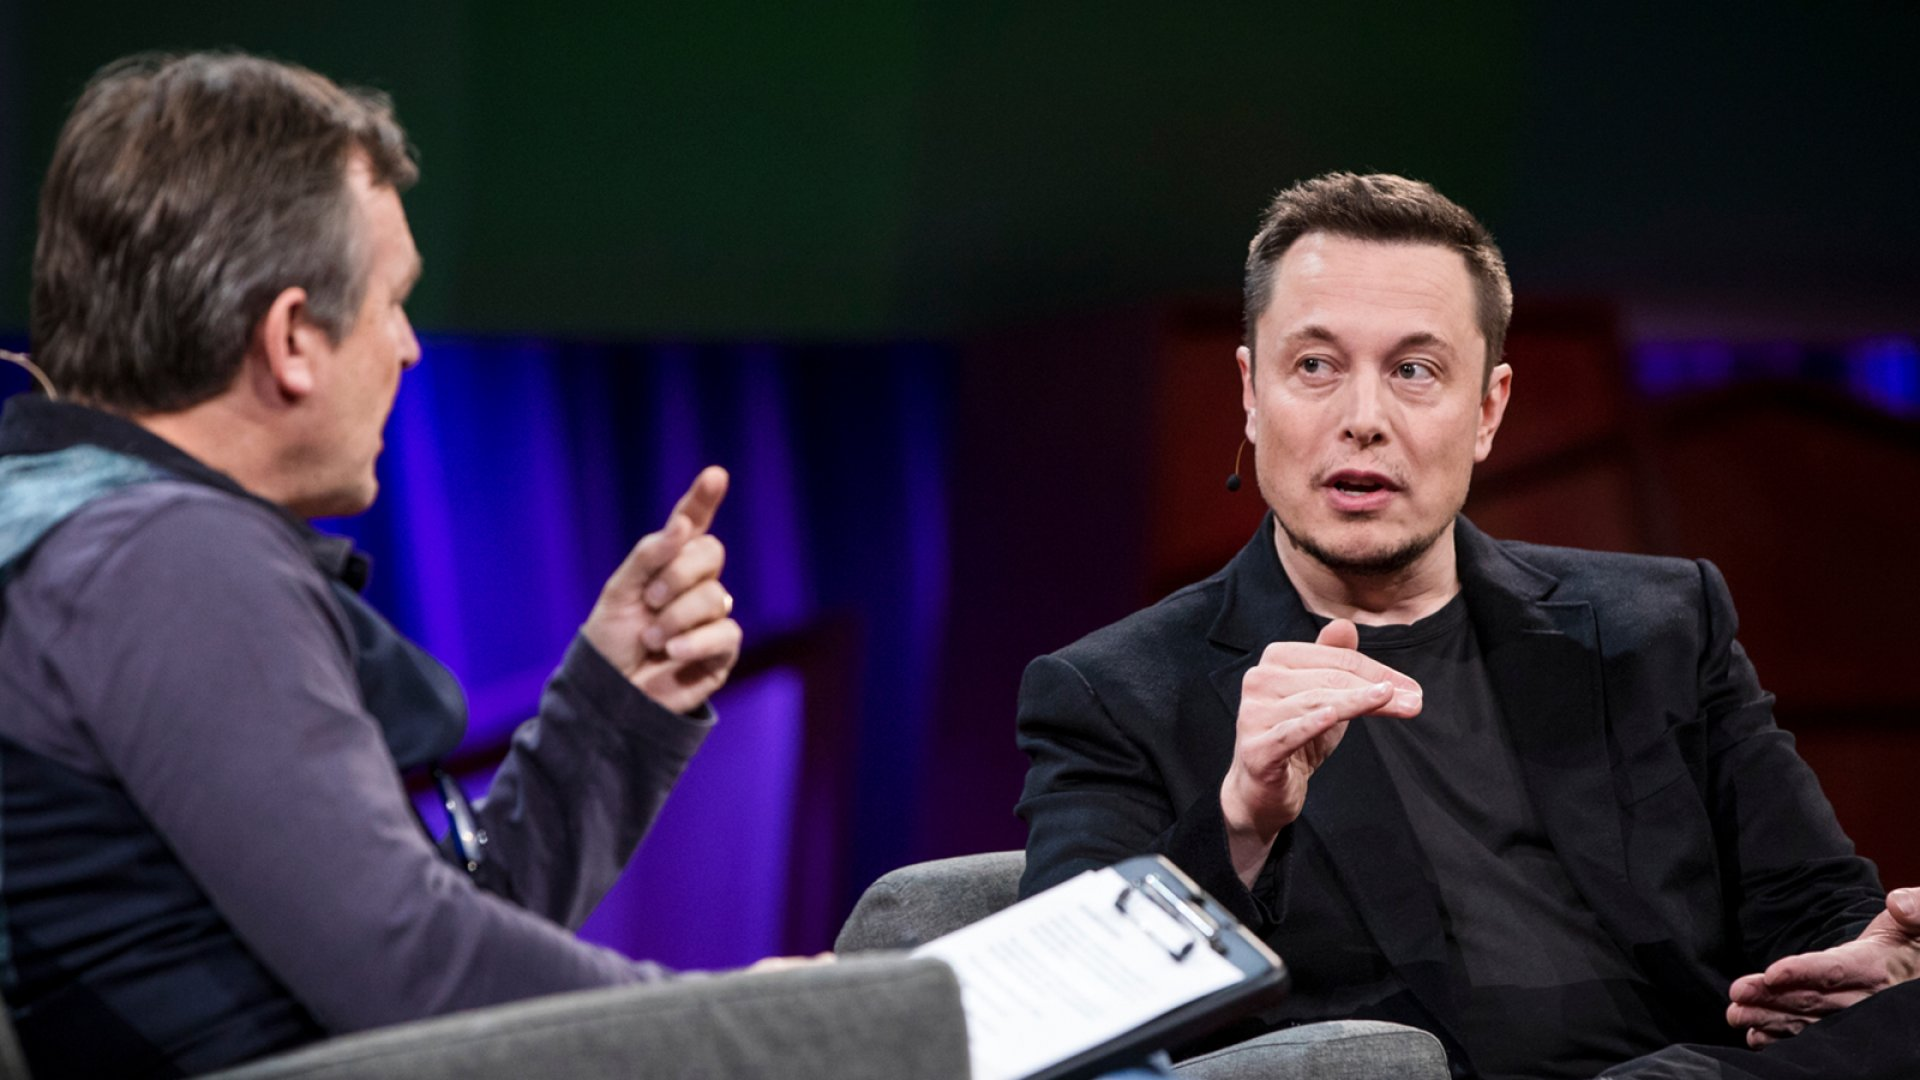 Elon Musk interviewed by Chris Anderson at TED2017 - The Future You.